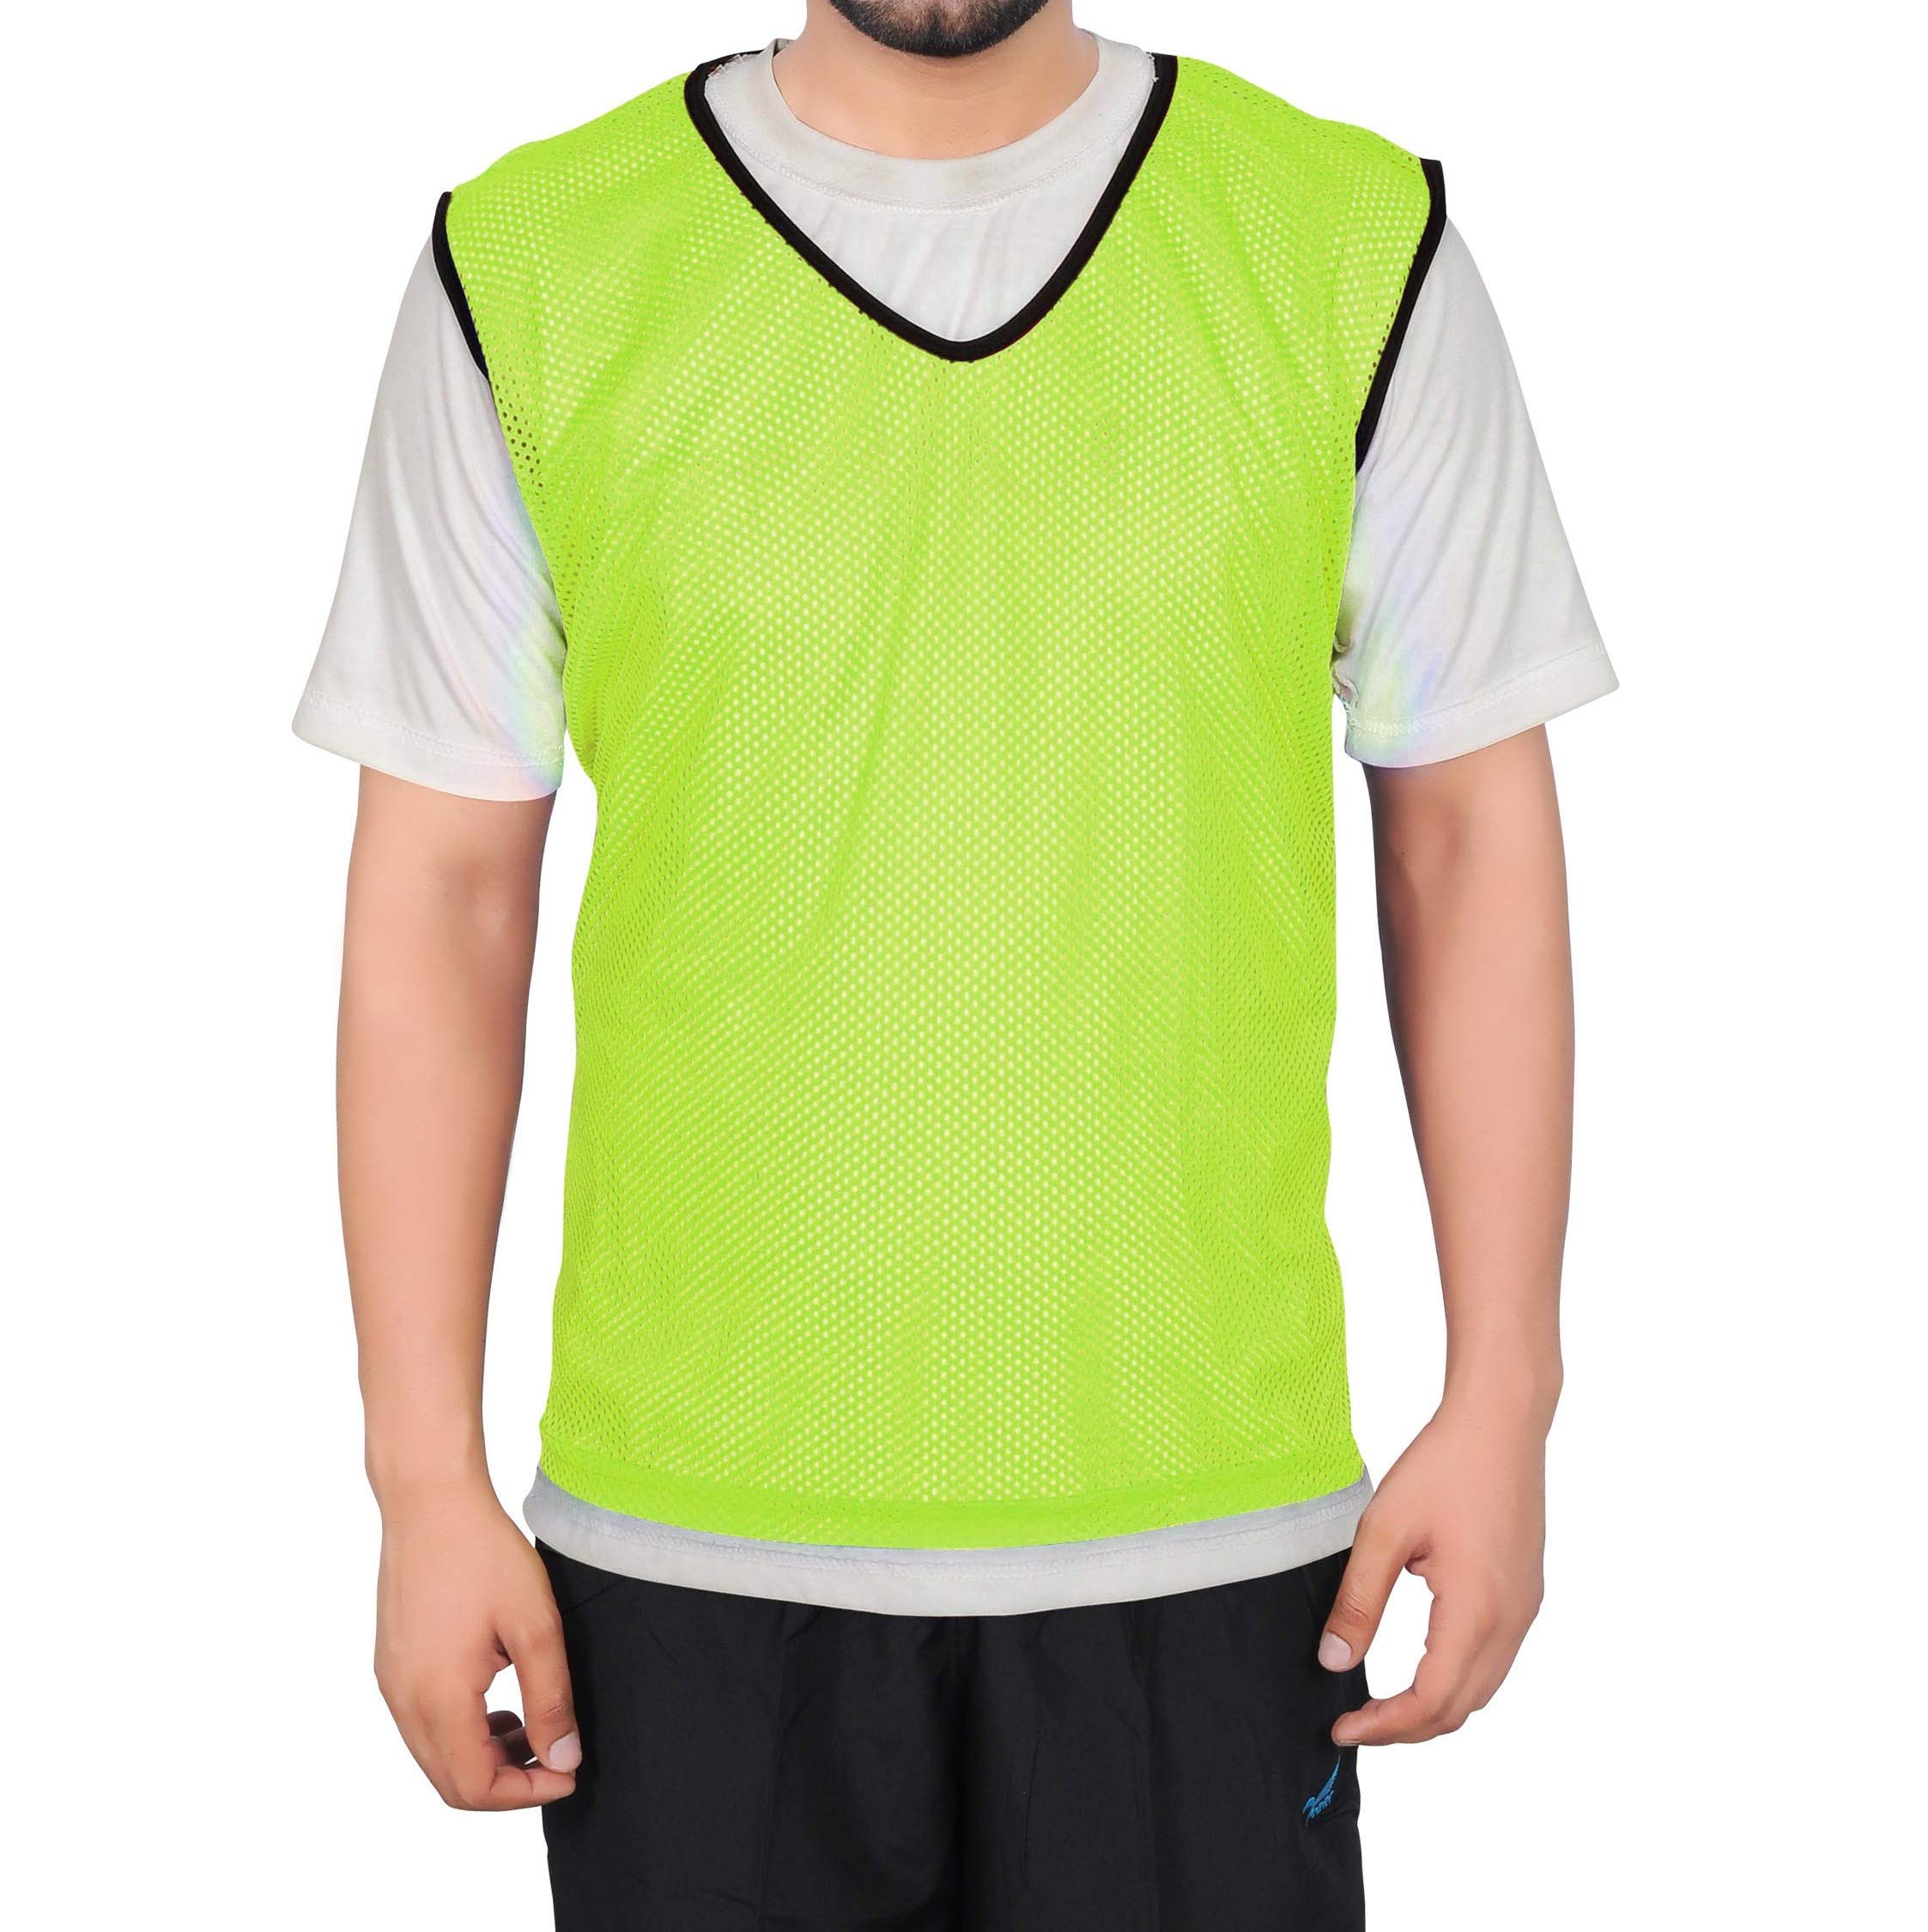 GSi Mesh Sports Training Bibs/Pinnies/Scrimmage/Vests for Soccer, Basketball, Football, Volleyball and Other Team Games (Pack of 6)